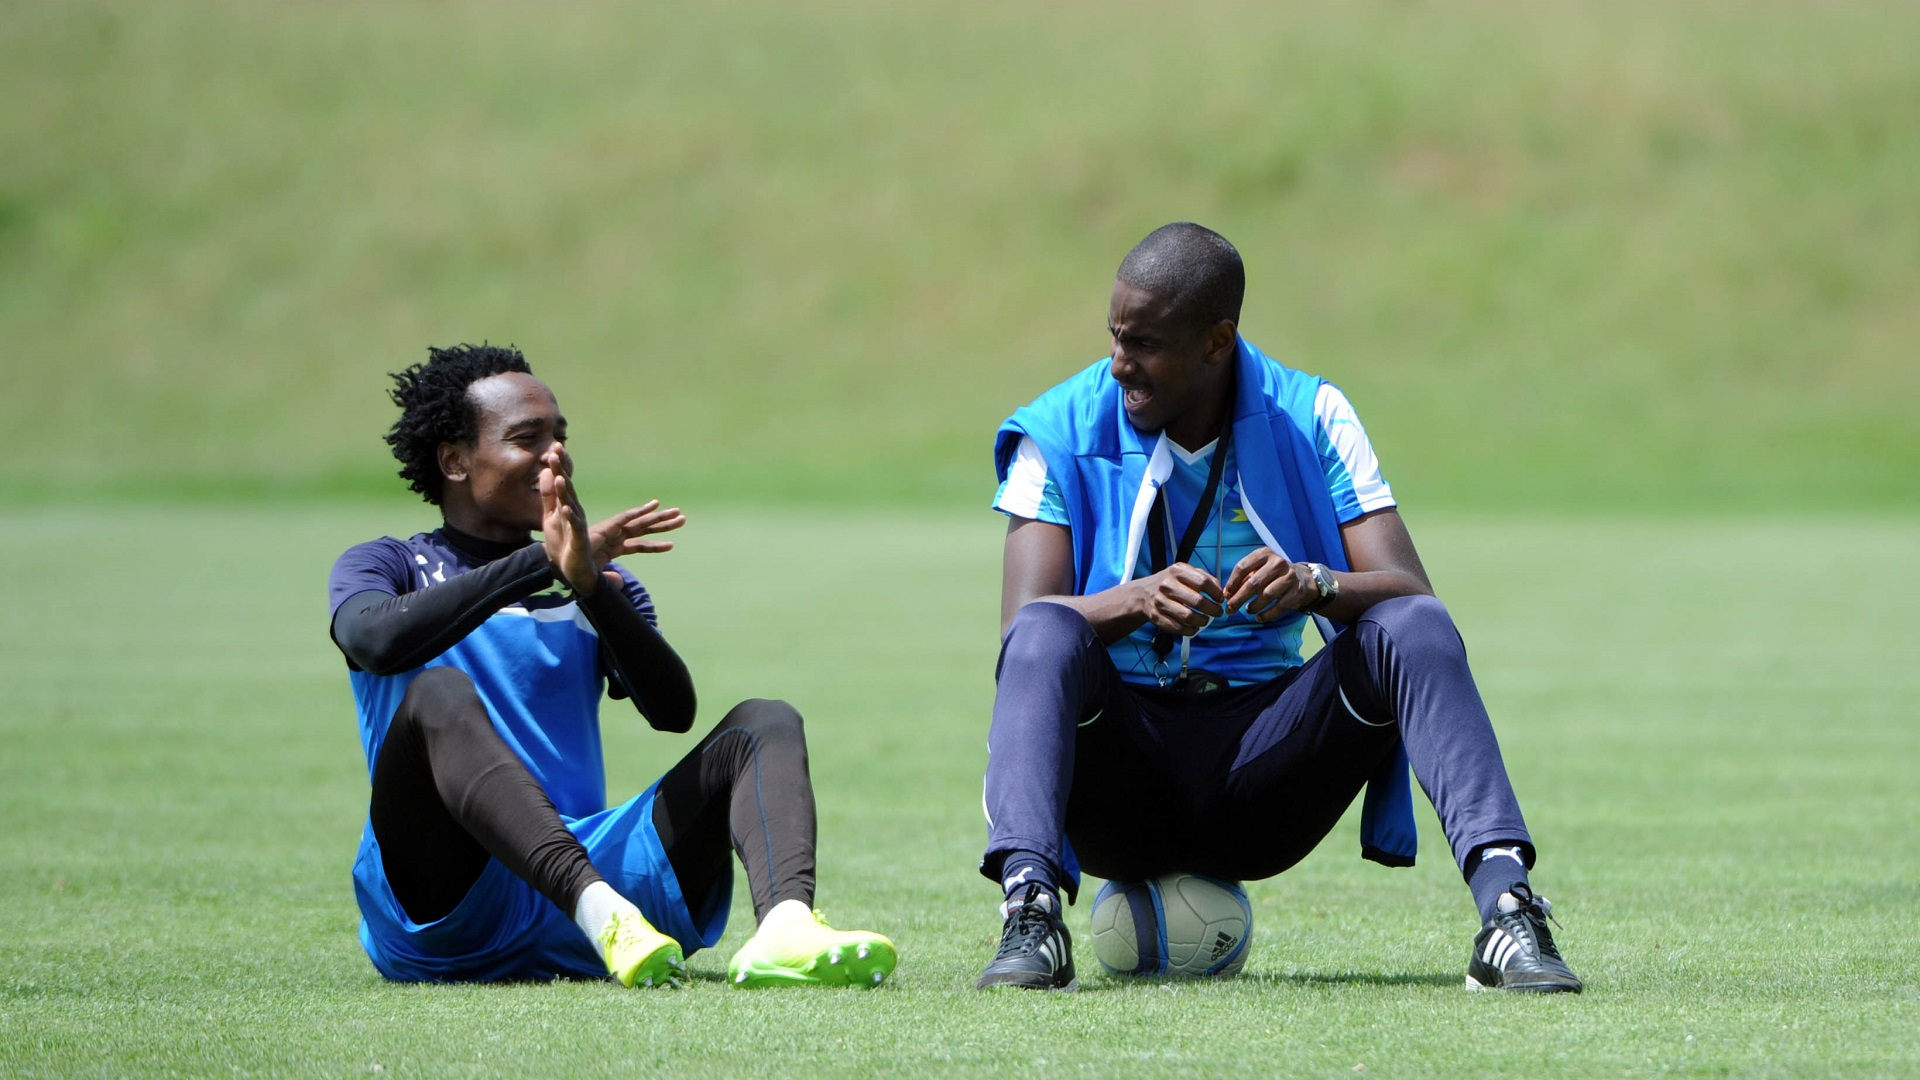 Mamelodi Sundowns coach Mokwena reveals 'emotional discussion' with Tau over Al Ahly move